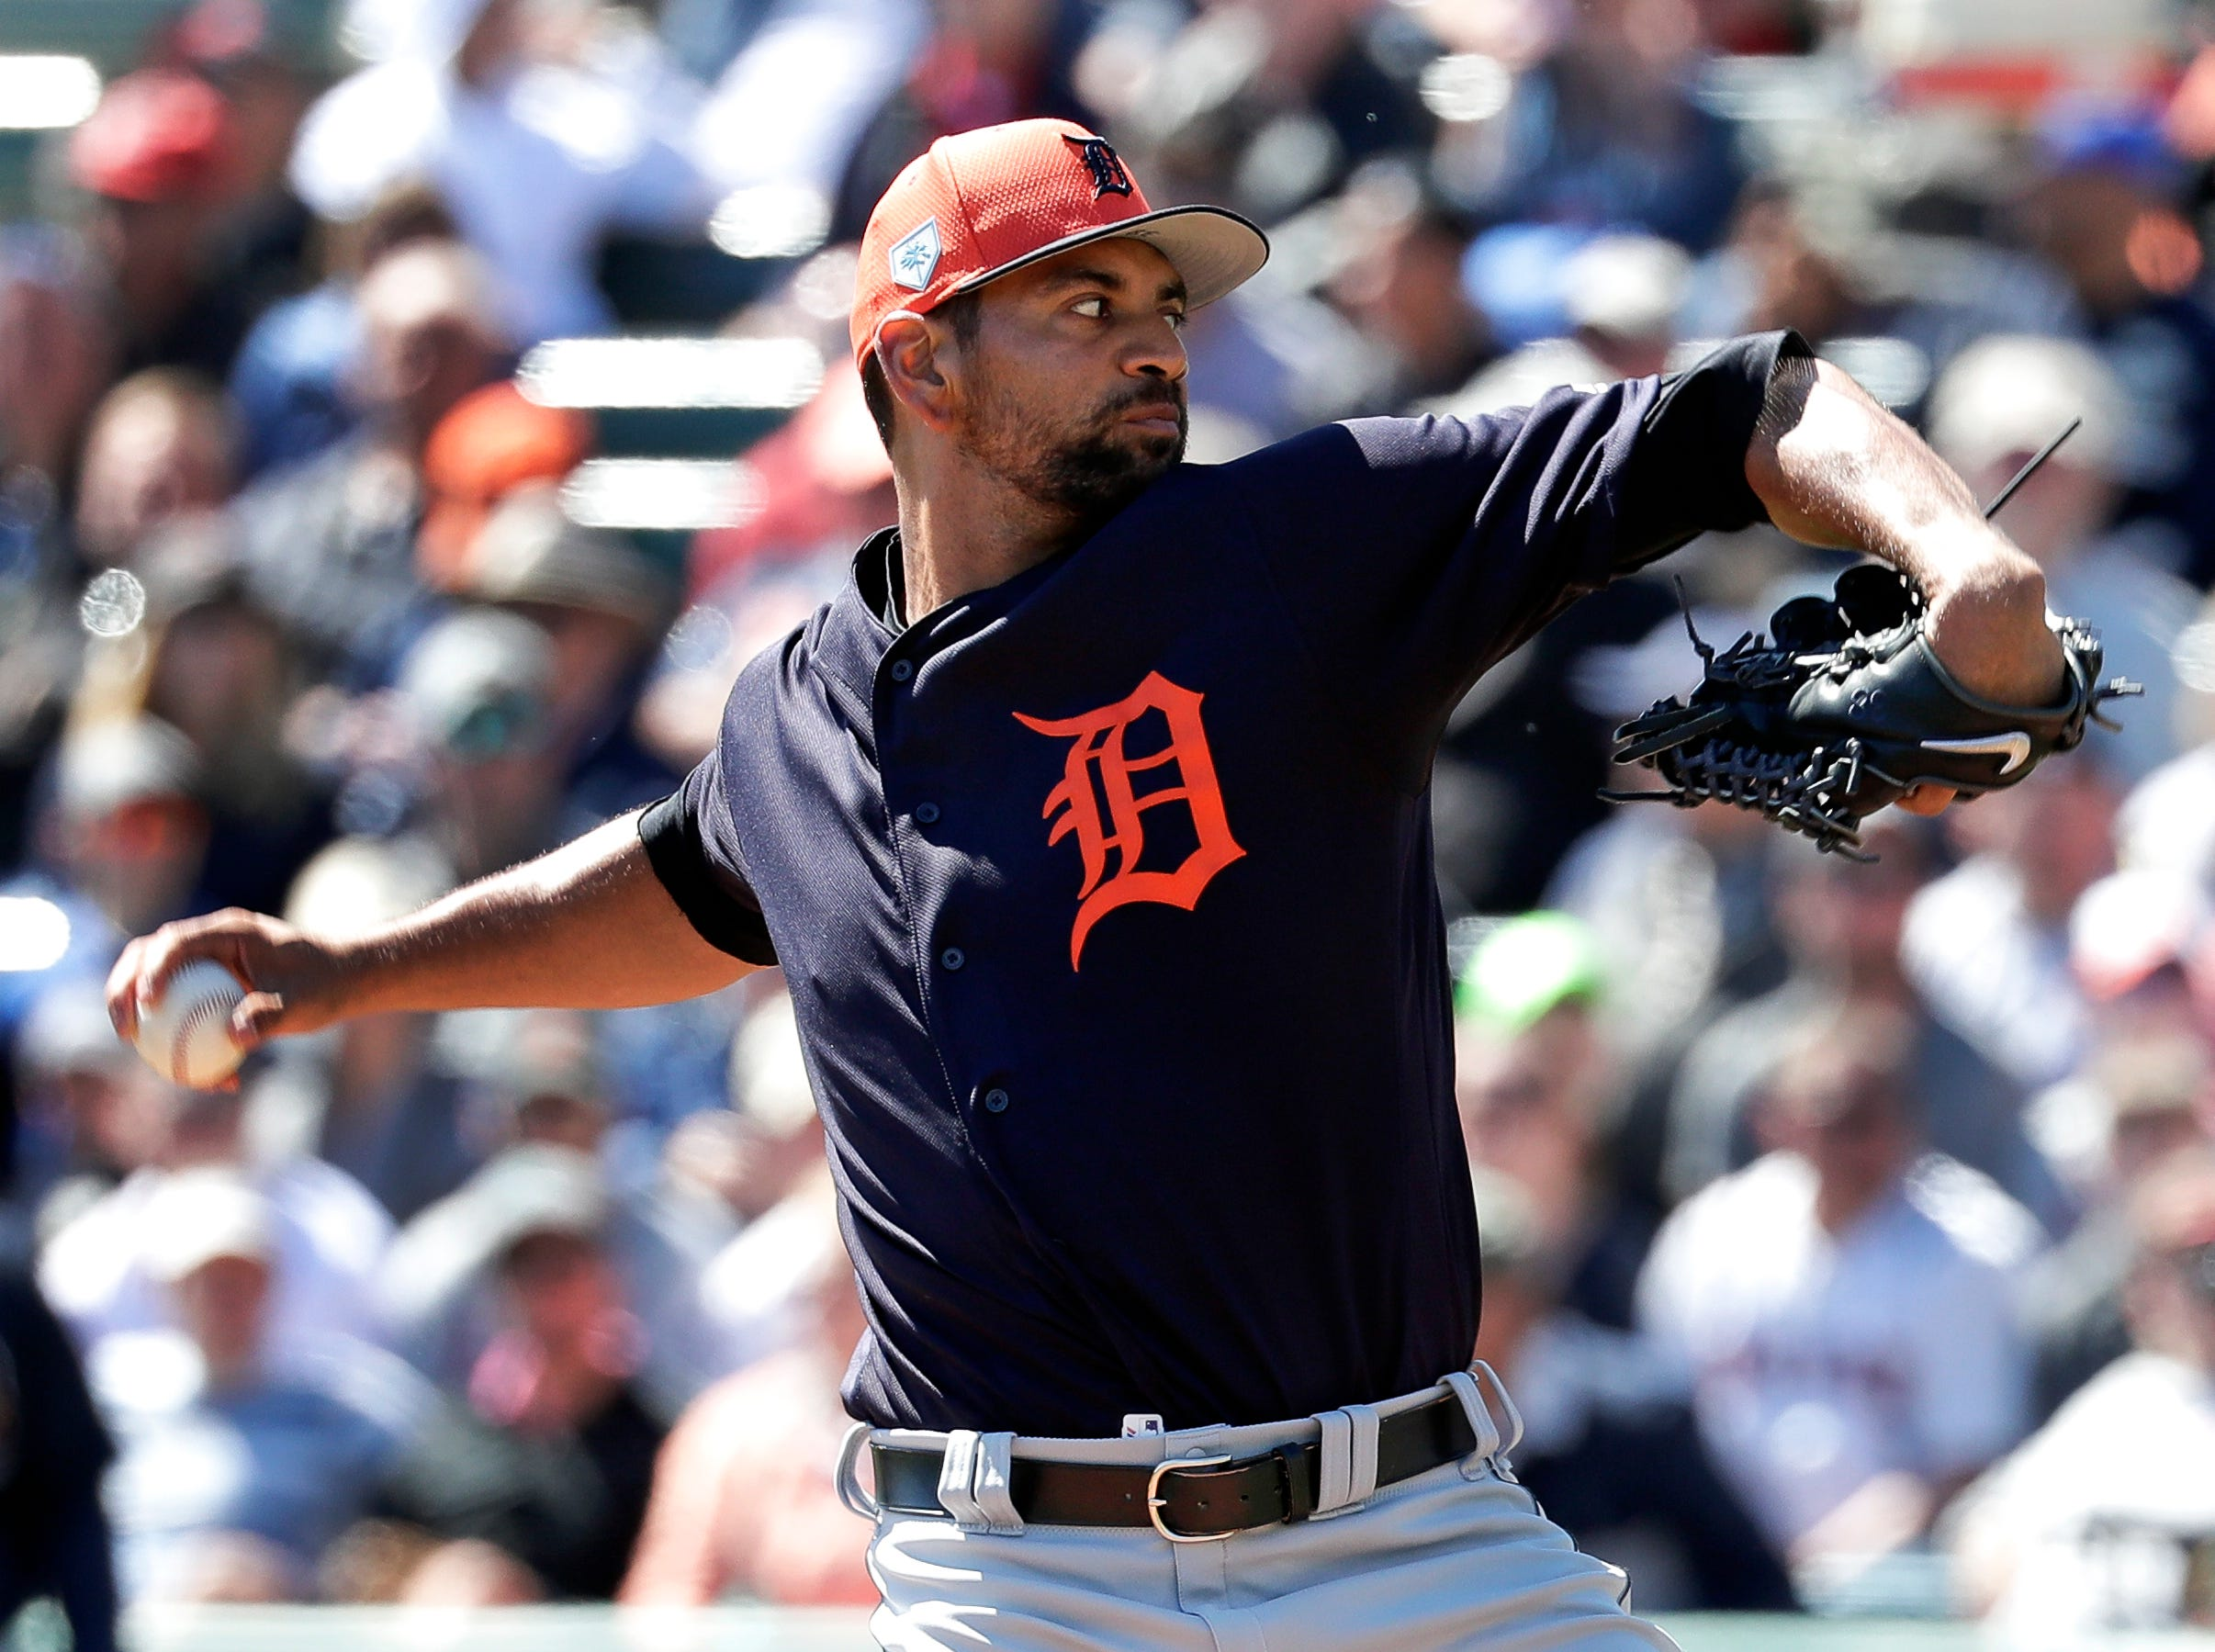 Detroit Tigers' Tyson Ross pitches against the Atlanta Braves in the first inning of a spring baseball exhibition game, Wednesday, March 6, 2019, in Kissimmee, Fla.